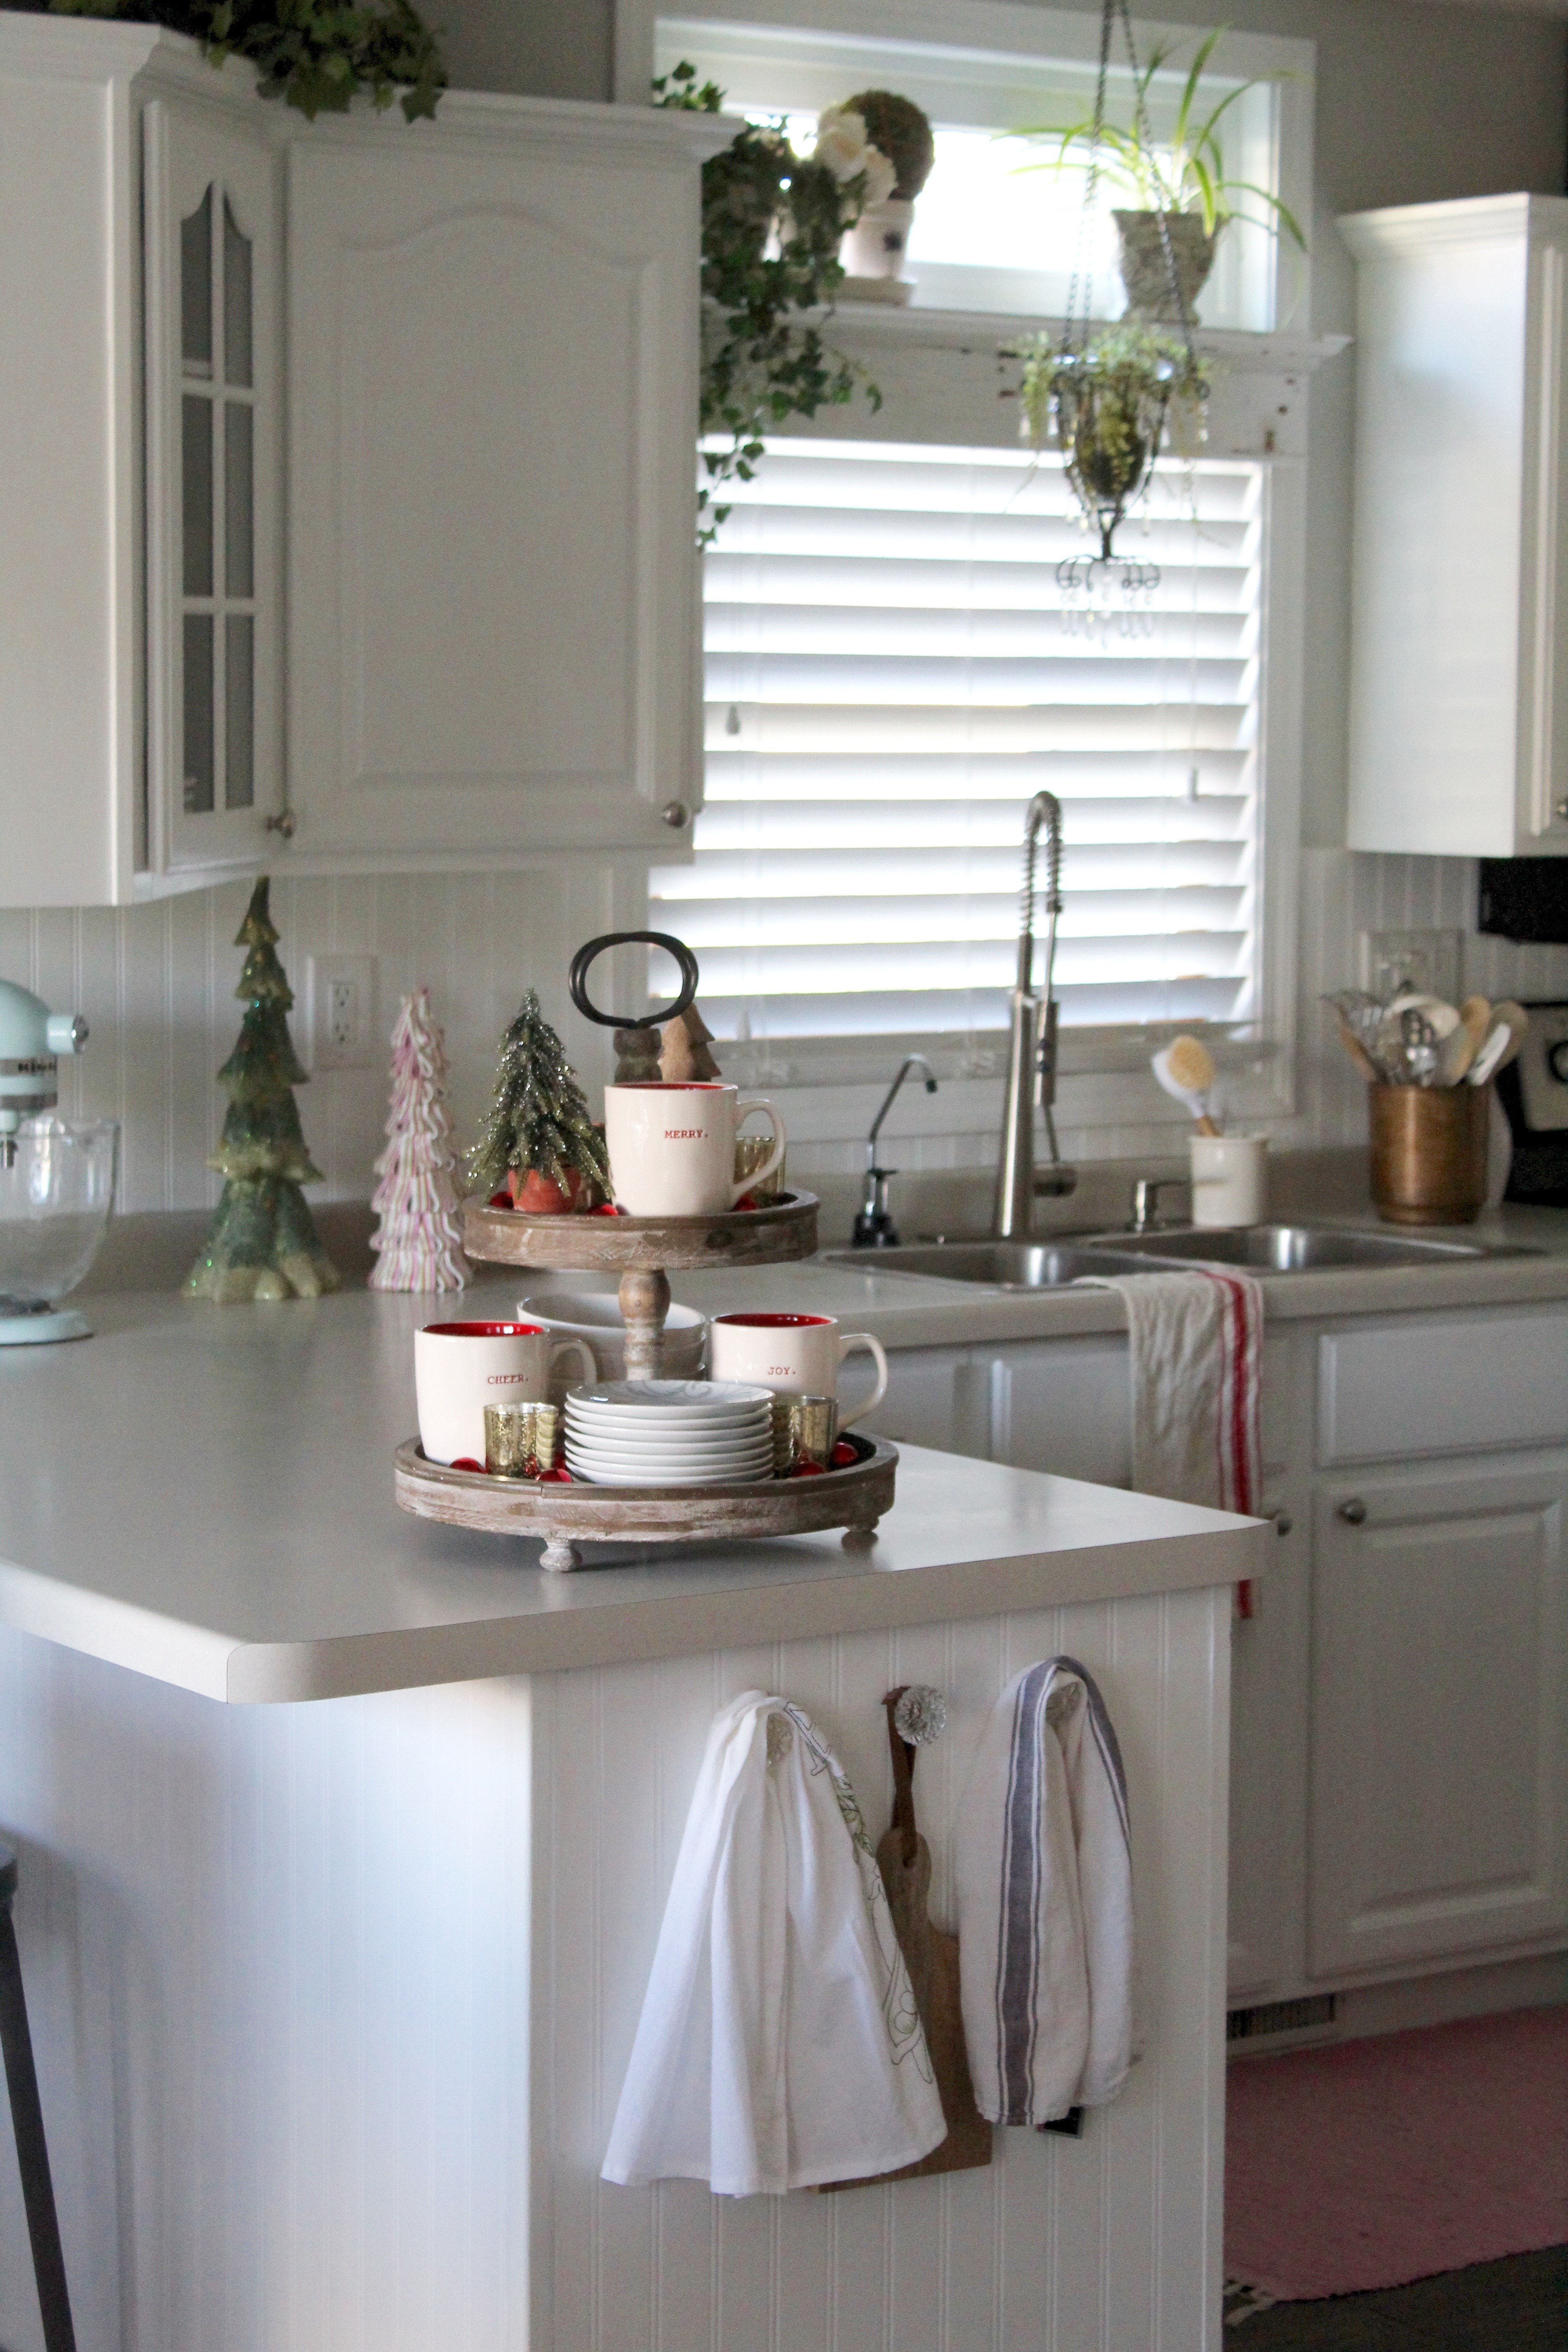 charming Christmas decor in kitchen